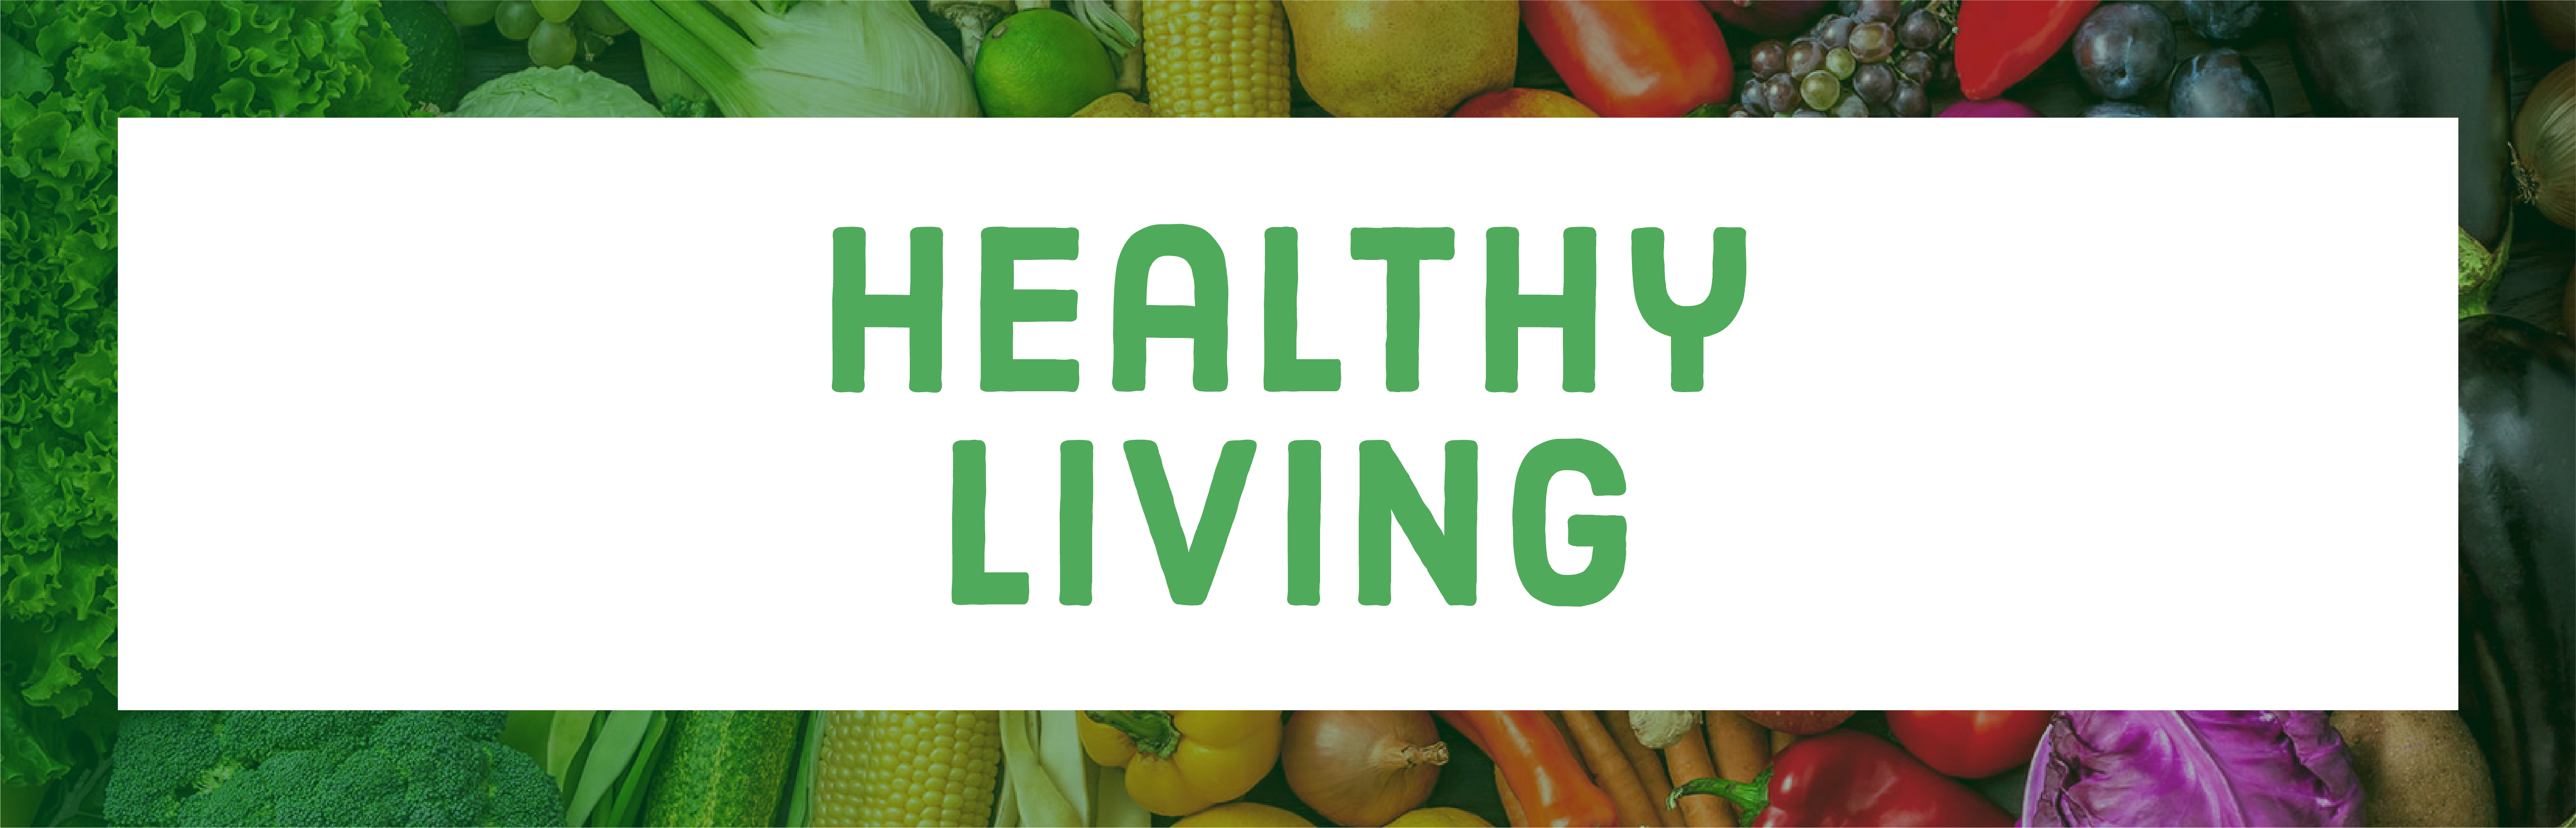 Healthy Living | Mustard Seed Market & Cafe